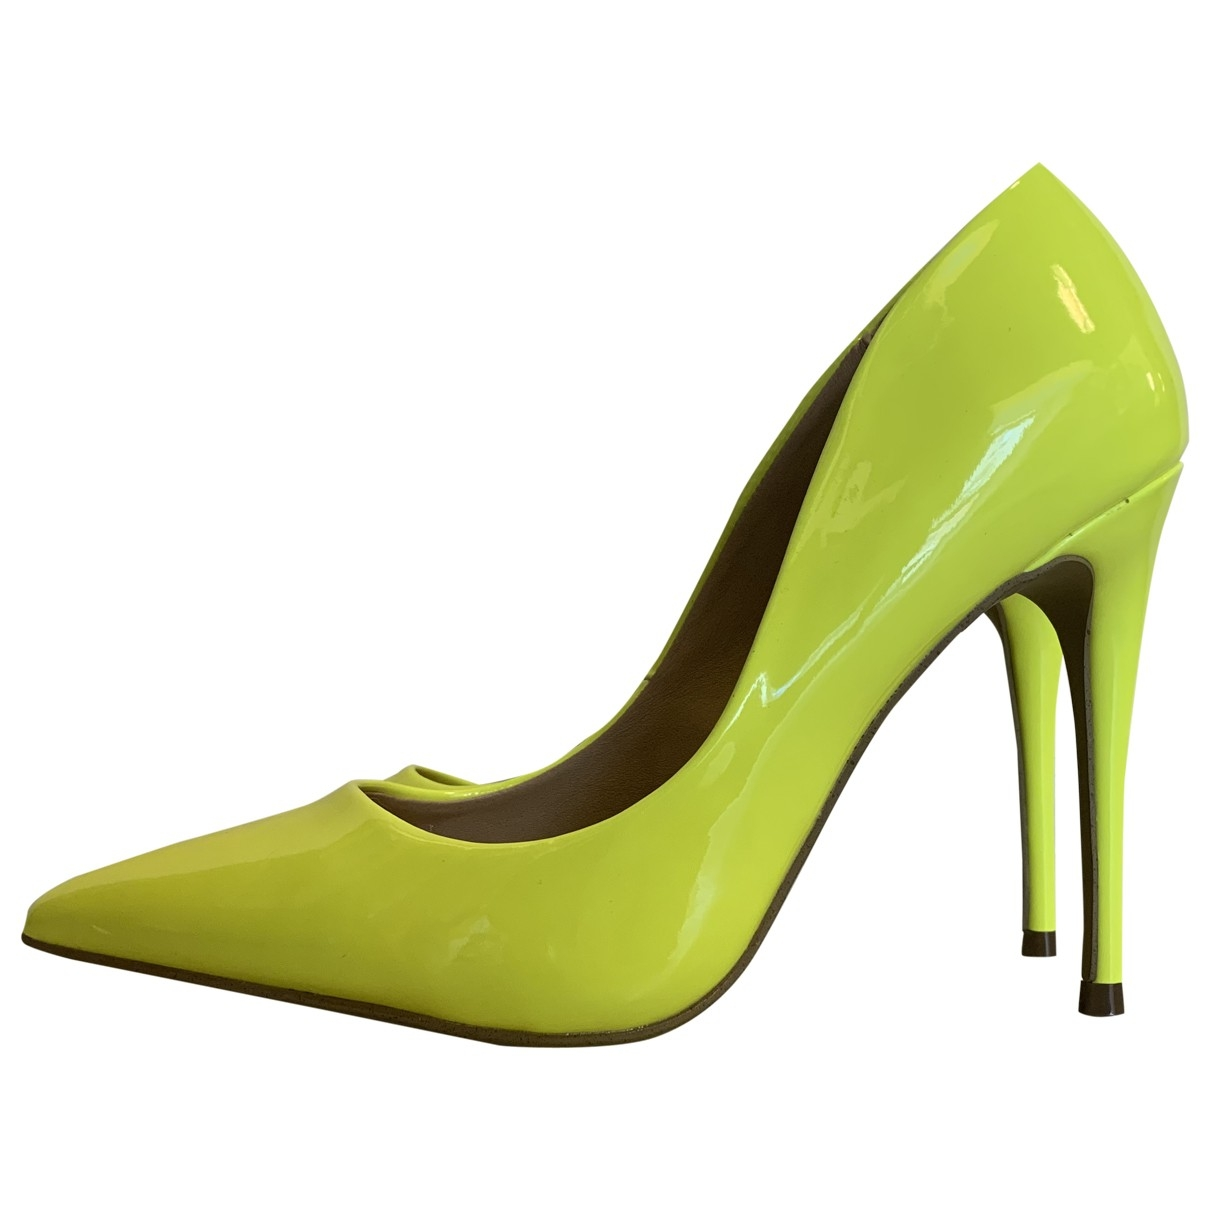 Steve Madden \N Yellow Patent leather Heels for Women 38 EU